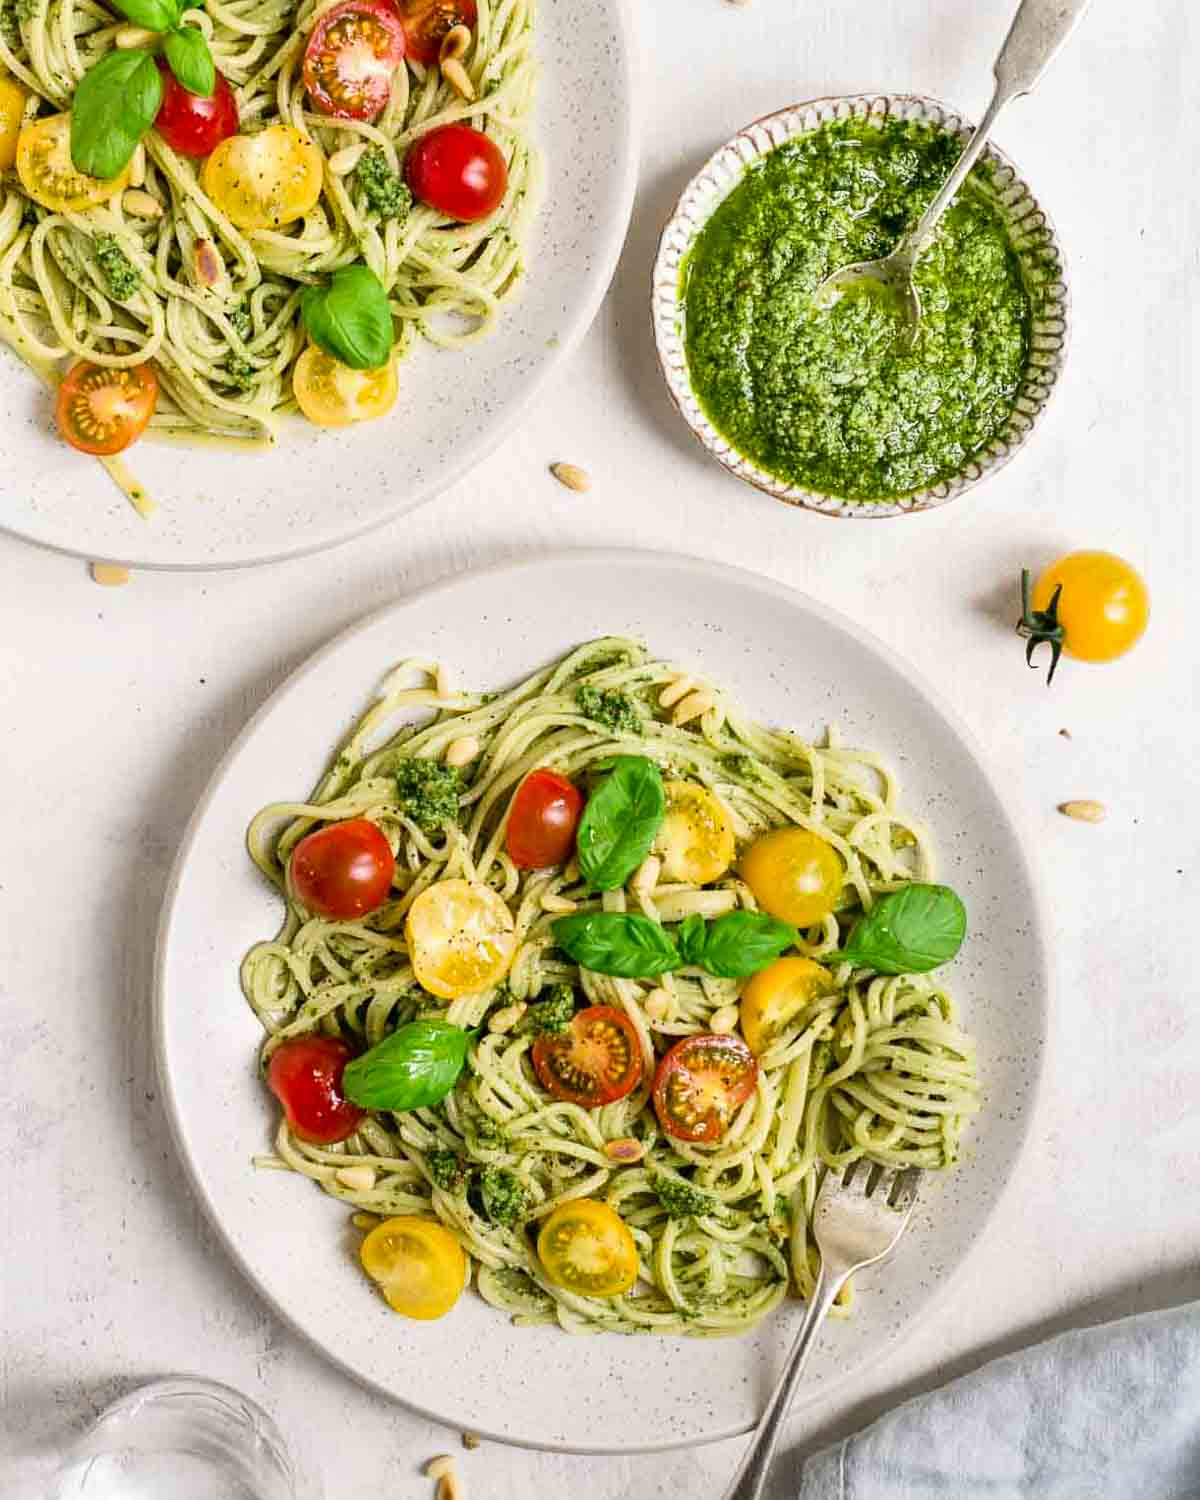 Pesto pasta served in a white plate with fork. There is another plate of pasta and a bowl of pesto beside.